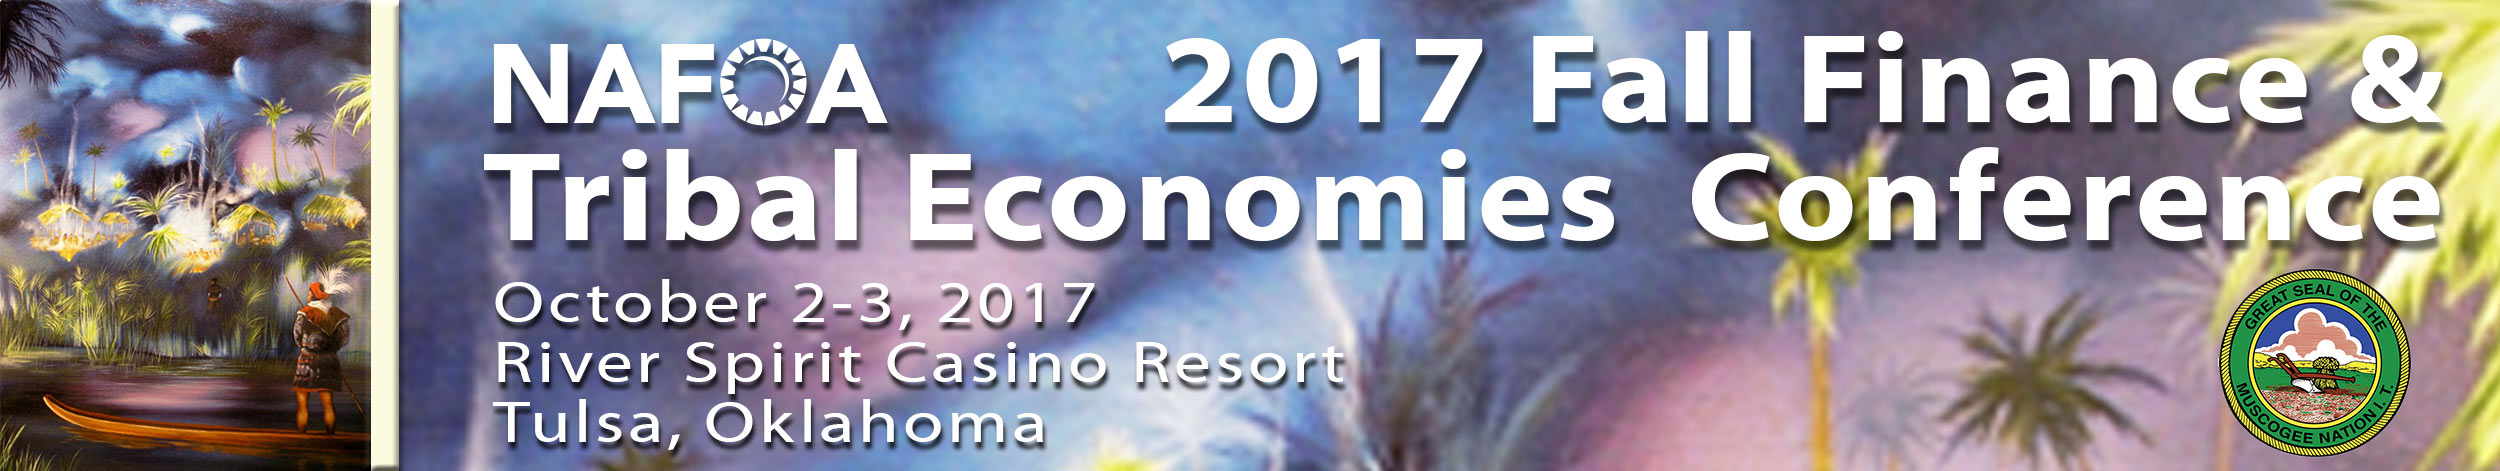 2017 Fall Finance & Tribal Economies Conference